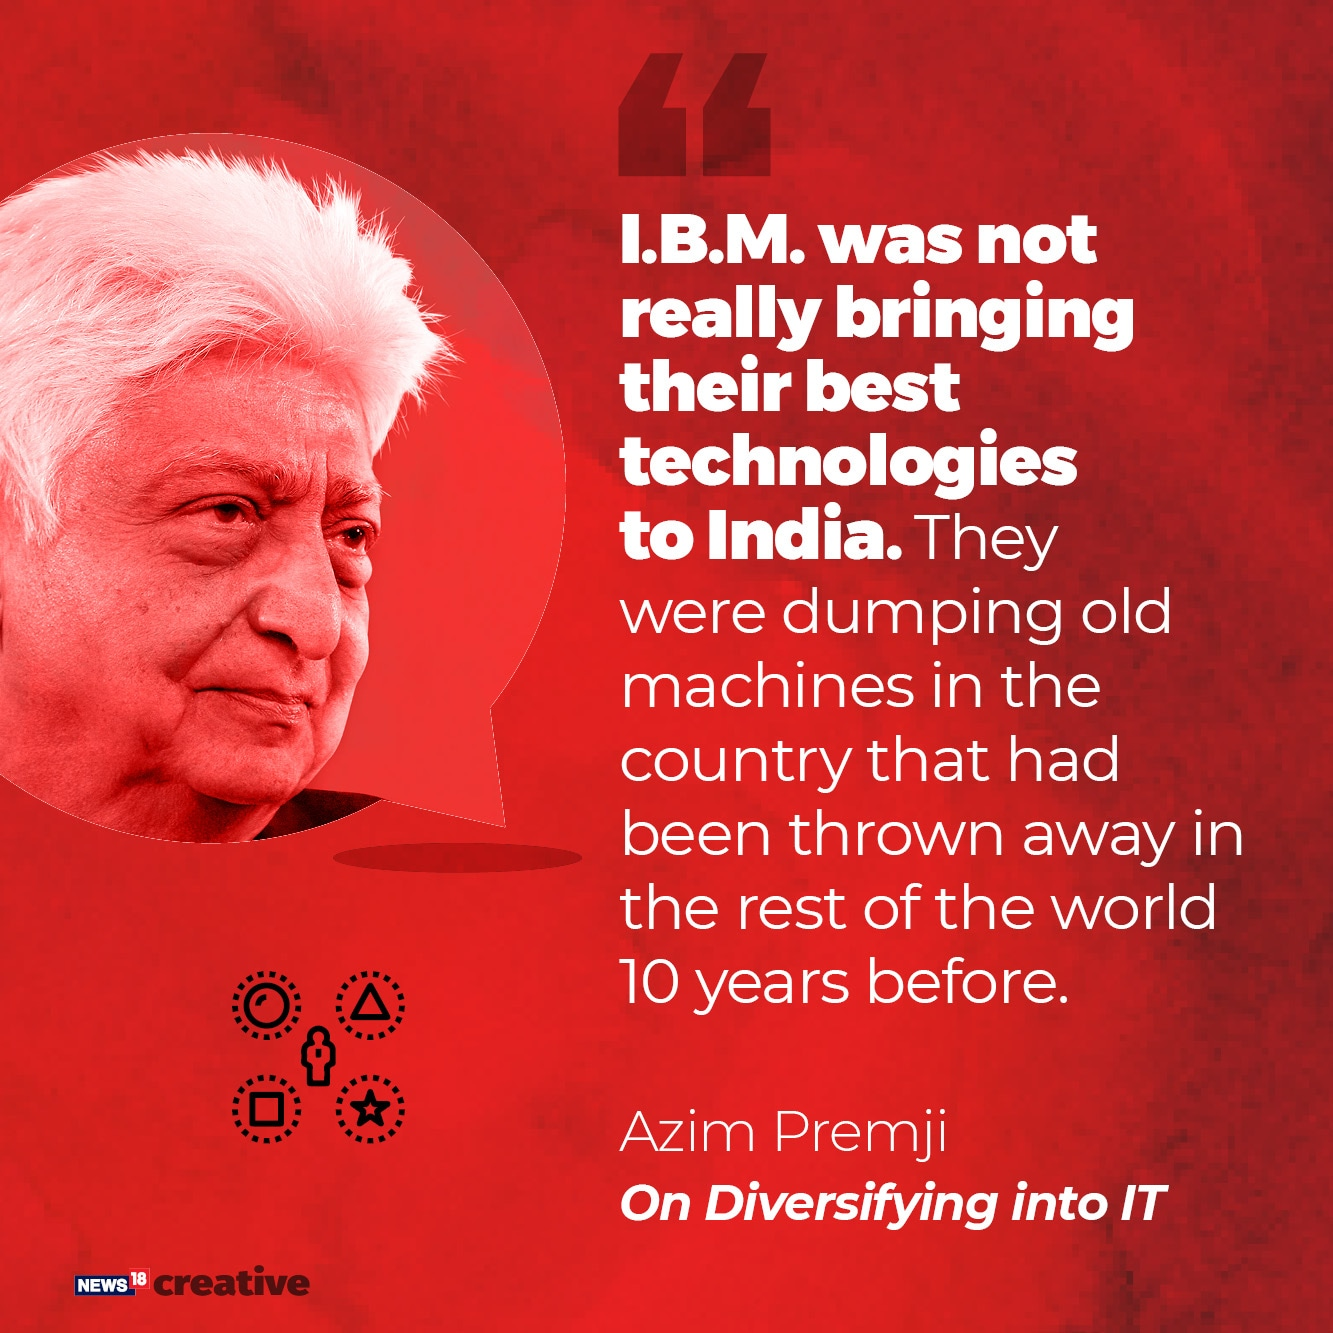 On Diversifying Into IT: IBM was not really bringing their best technologies to India. They were dumping old machines in the country that had been thrown away in the rest of the world 10 years before.